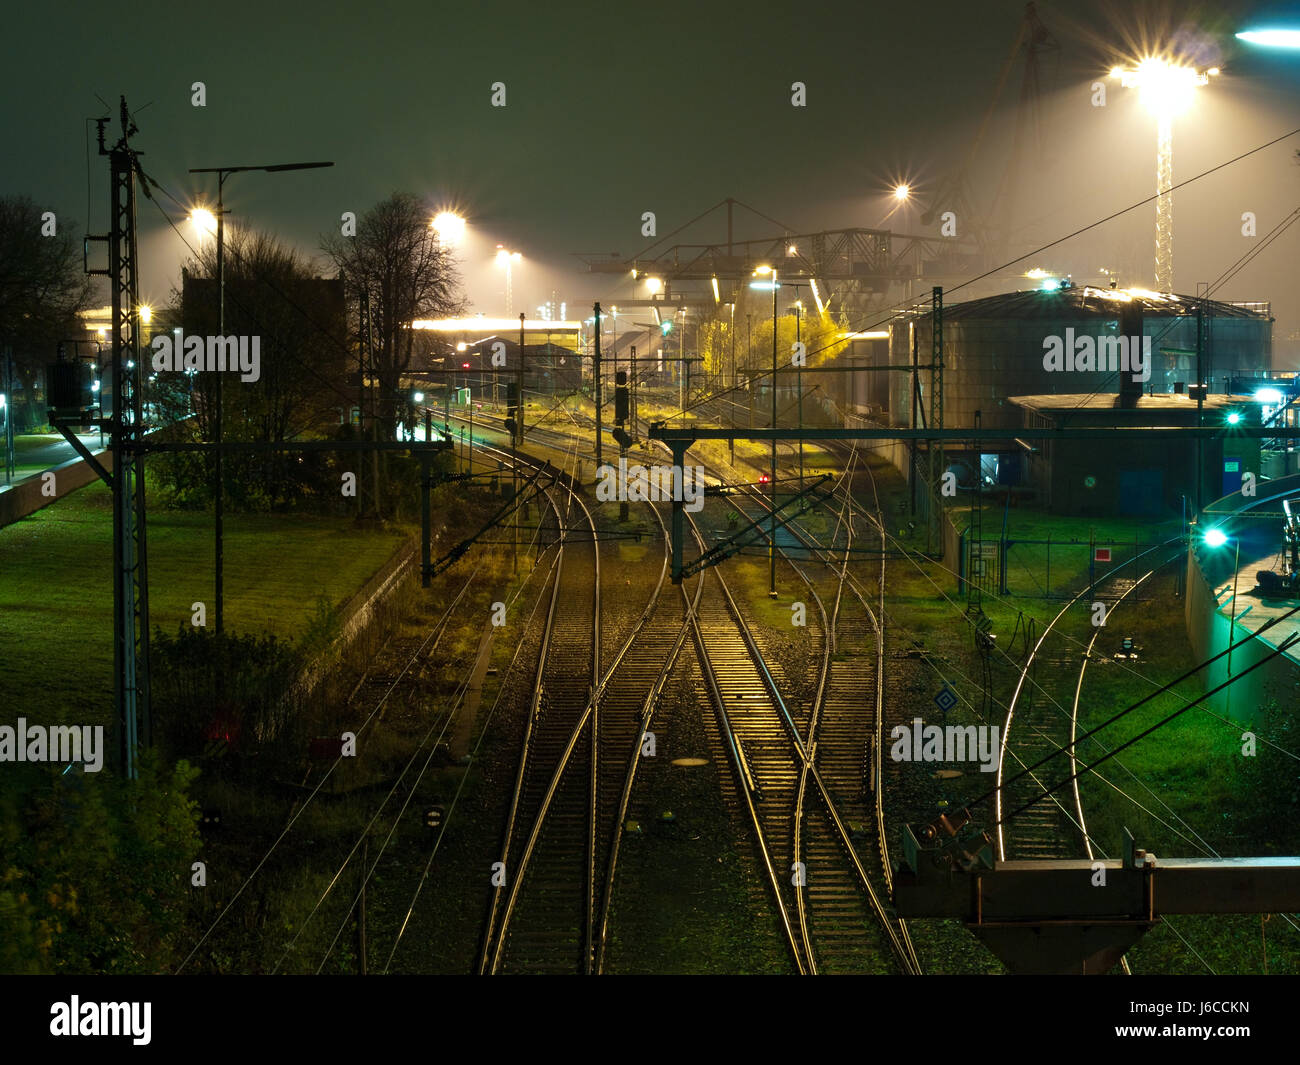 station night nighttime lights tracks yield station night nighttime lights - Stock Image & Station Night Nighttime Lights Tracks Stock Photos u0026 Station Night ... azcodes.com